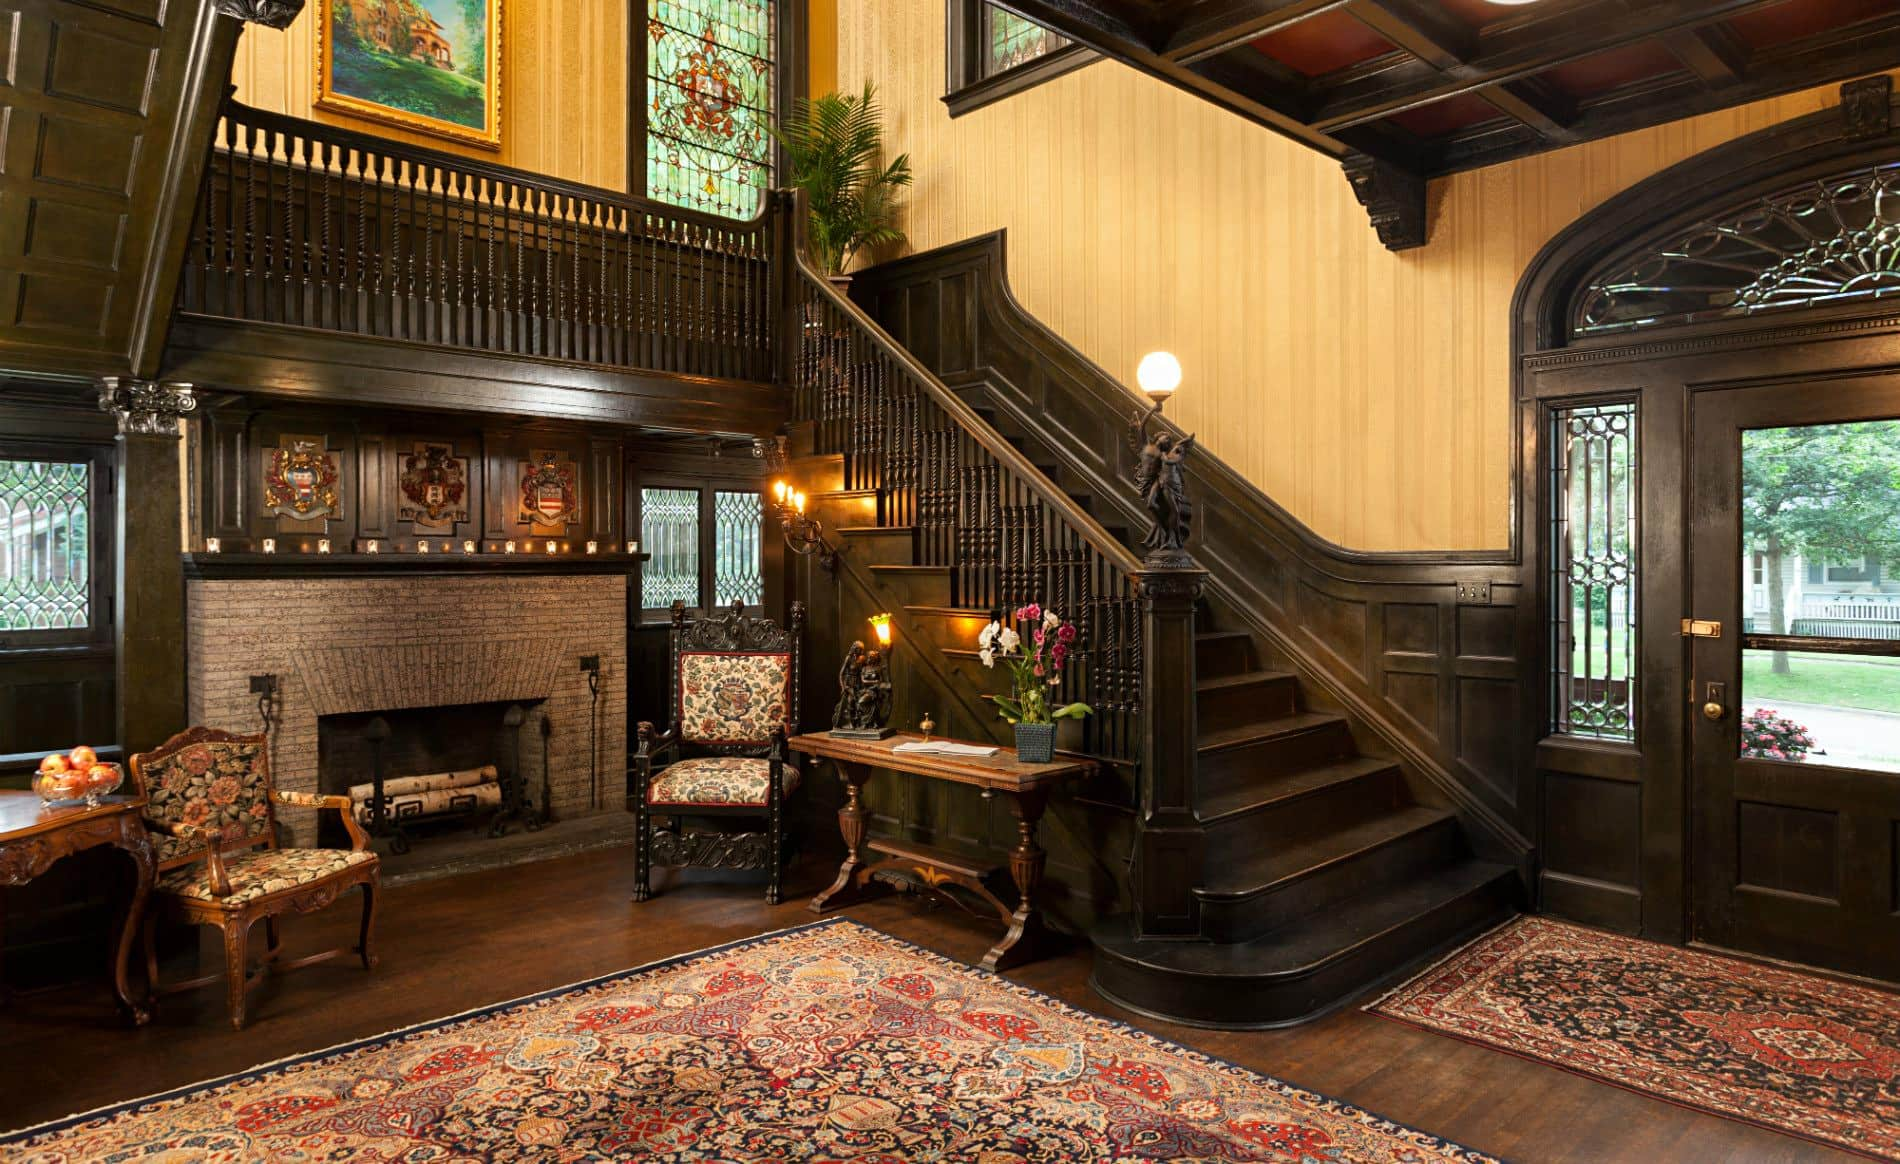 Beautiful Mansion Foyer With Dark Stained Wood Trim And Staircase, Wood  Floors, Fireplace,